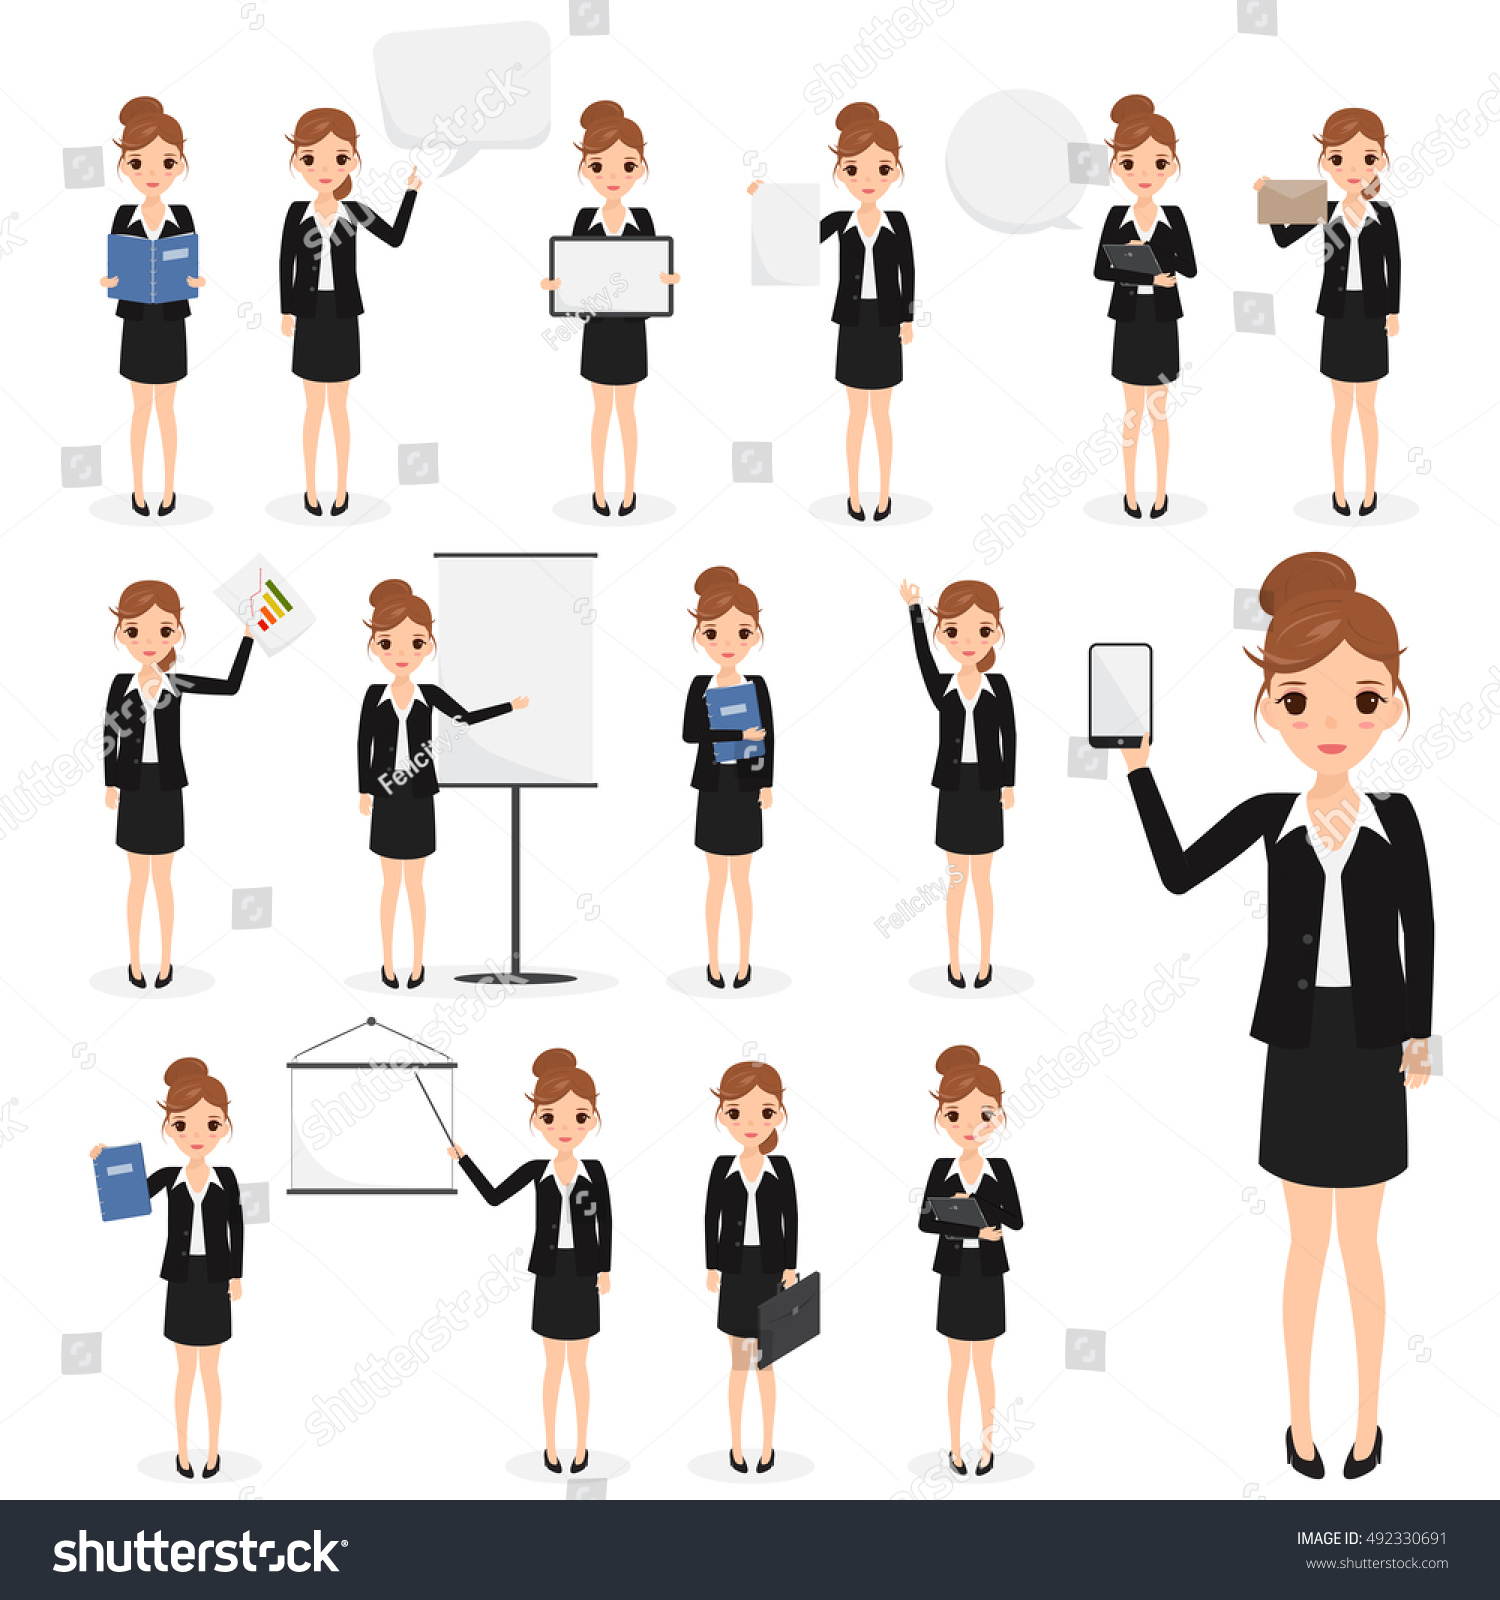 Character Design Job Openings : Business woman character in job at office desk vector